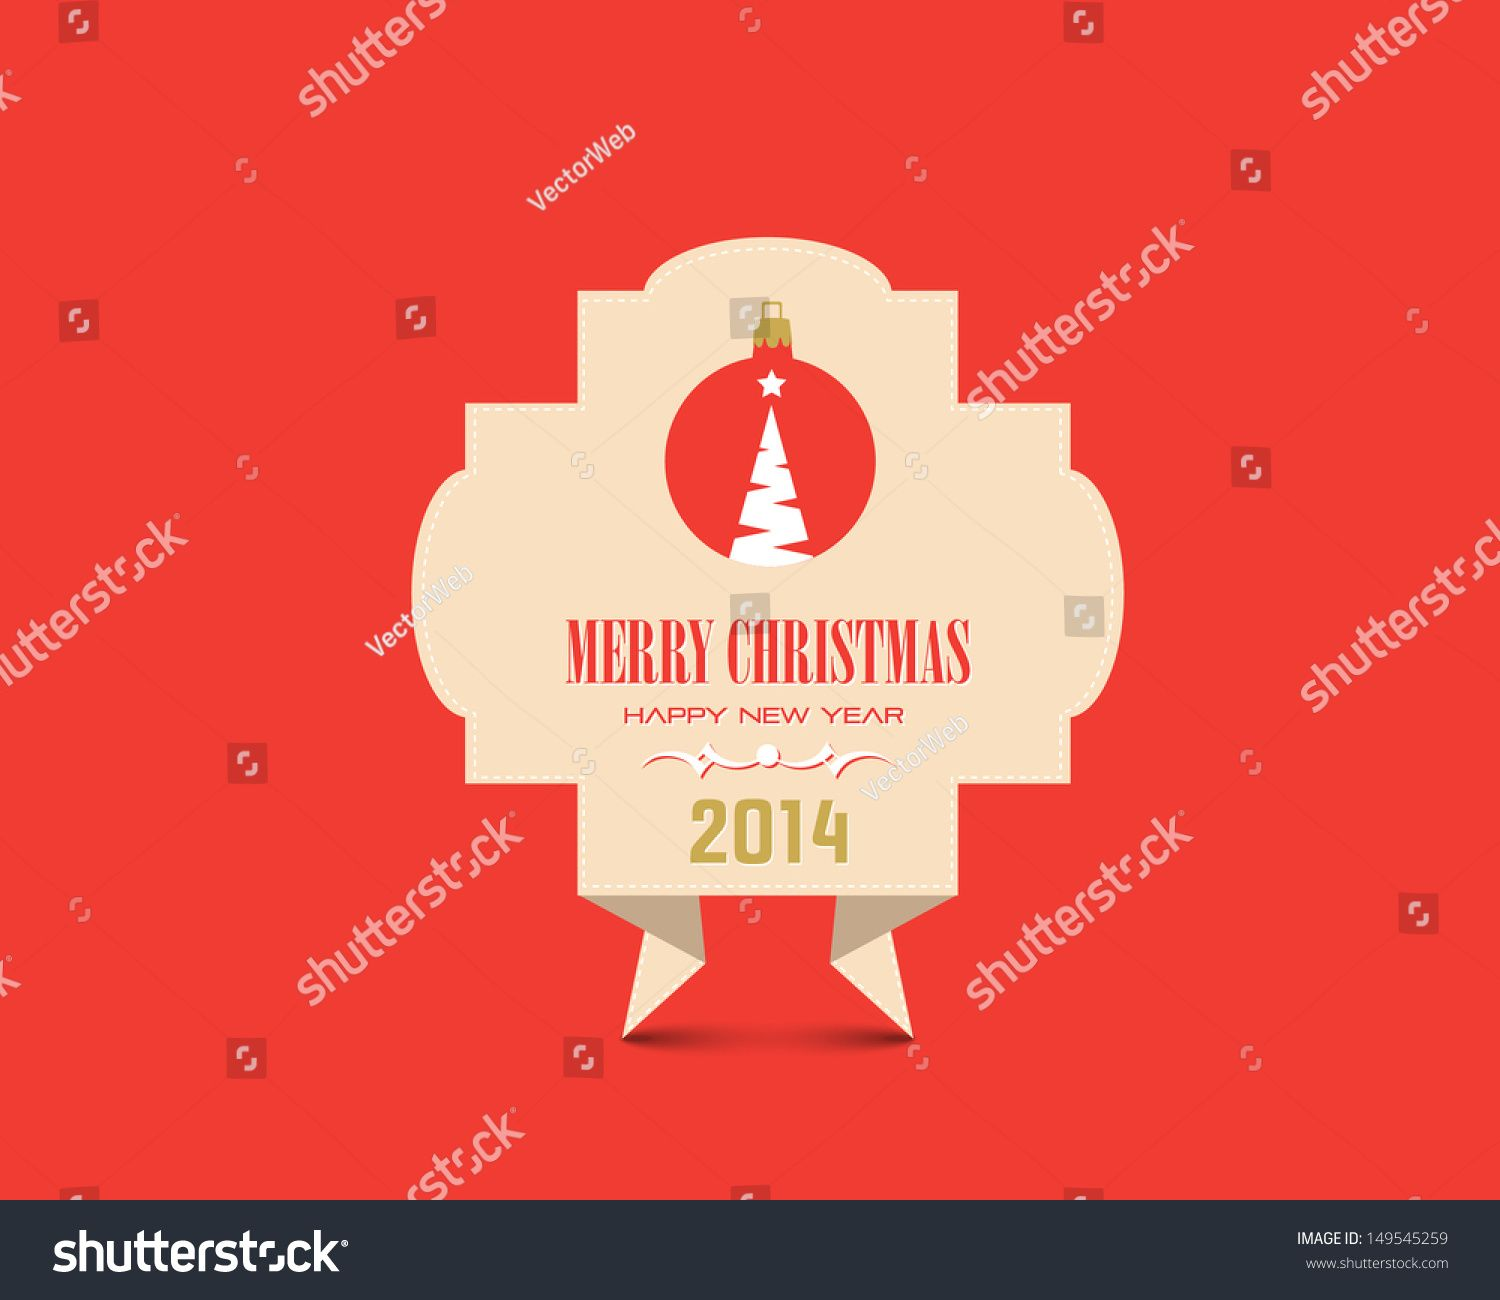 Merry Christmas And Happy New Year Ad Ad Christmas Merry Year Happy In 2020 Merry Happy Merry Christmas And Happy New Year Happy Christmas